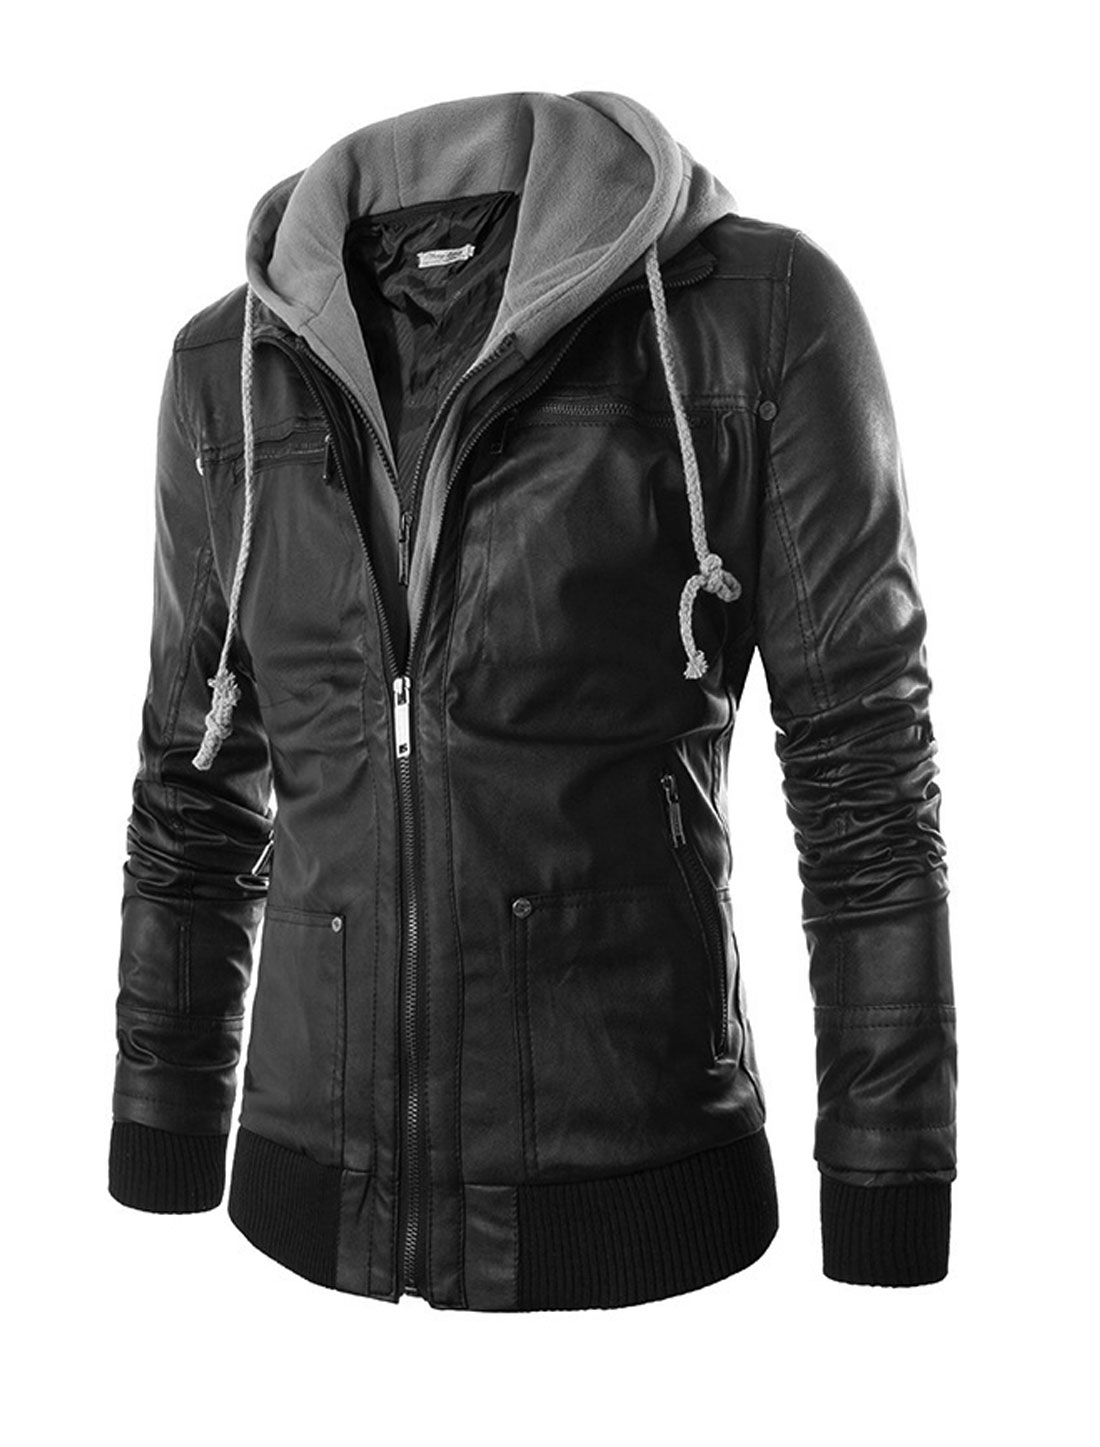 Men Black Layered Designs Double Zip Up Zipper Pockets Hoodie Jacket M